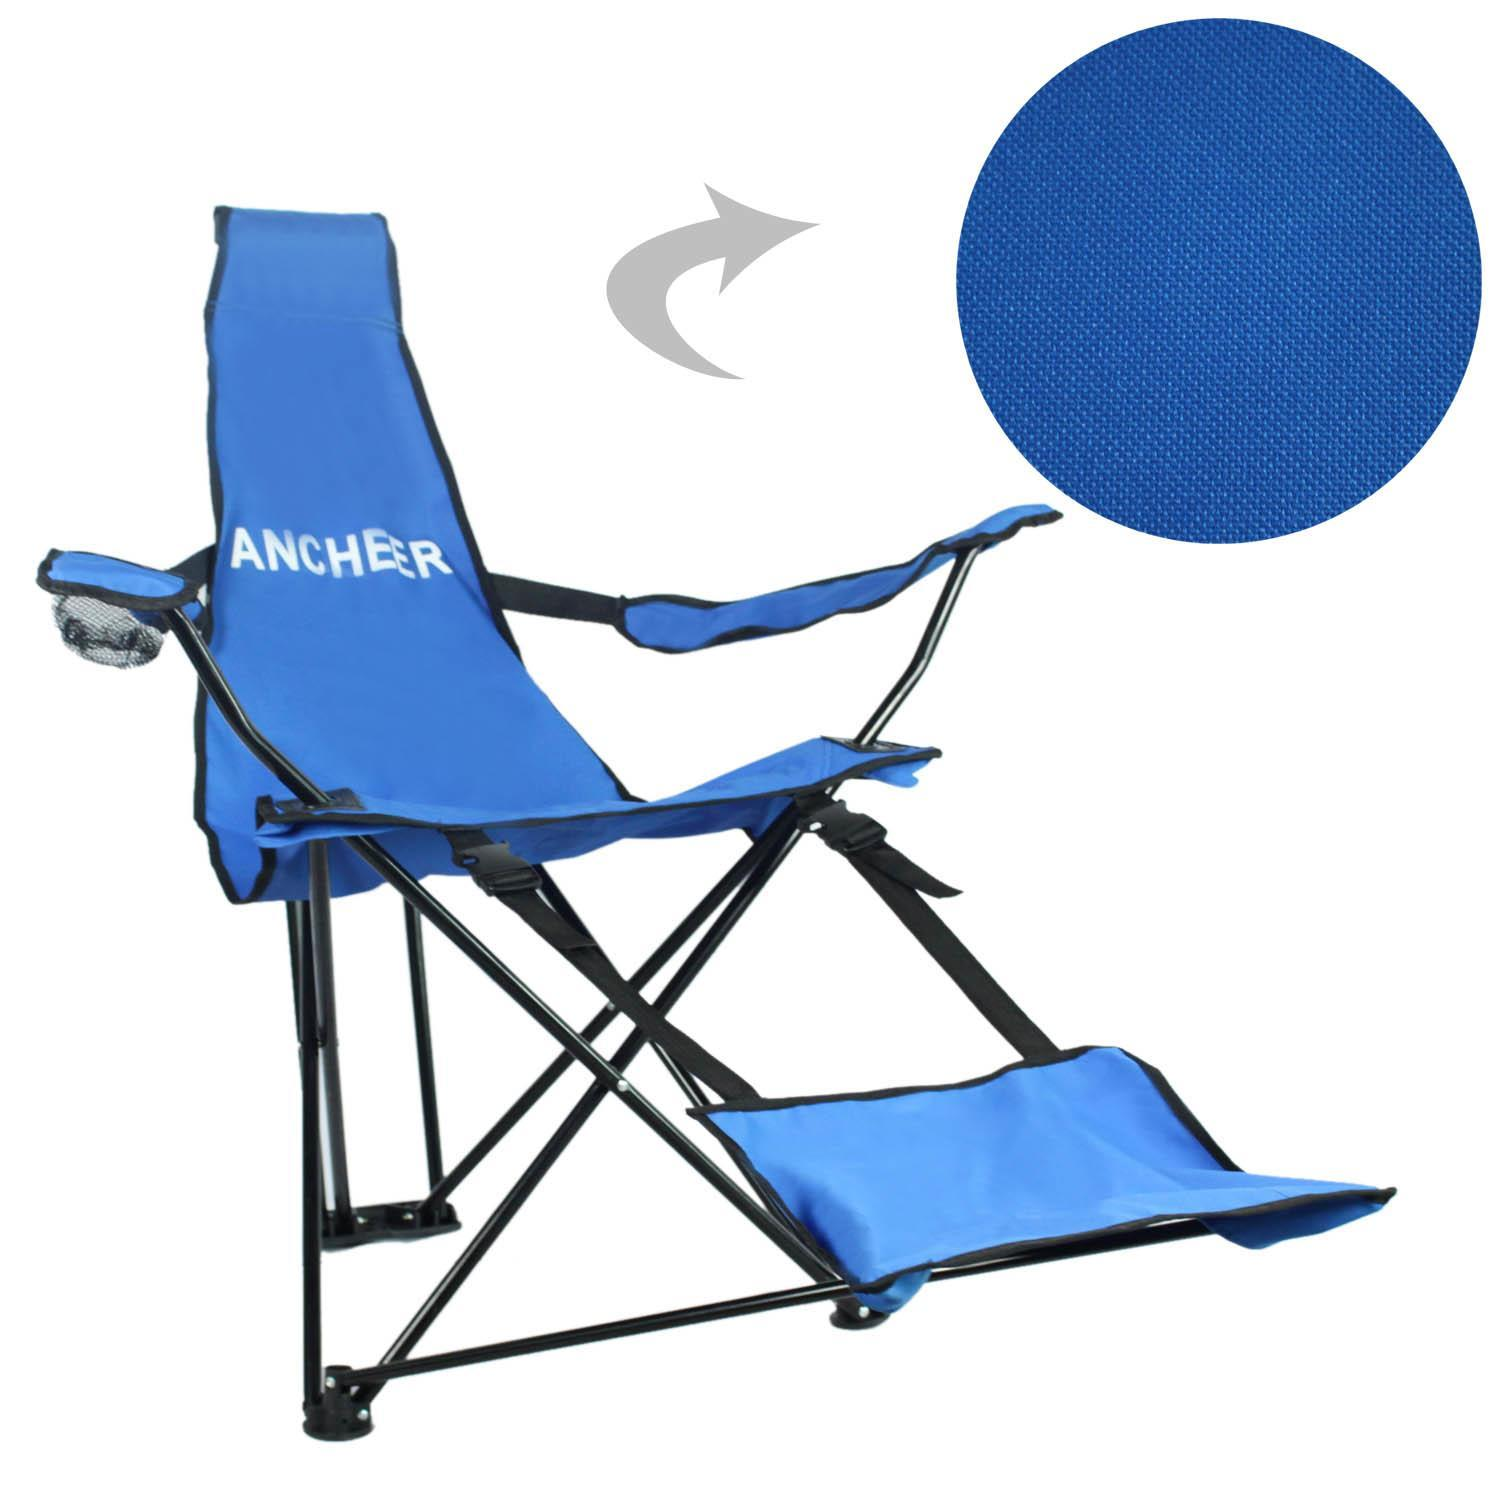 Portable Beach Chair Outdoor Portable Folding Beach Recliner Chair Tripod